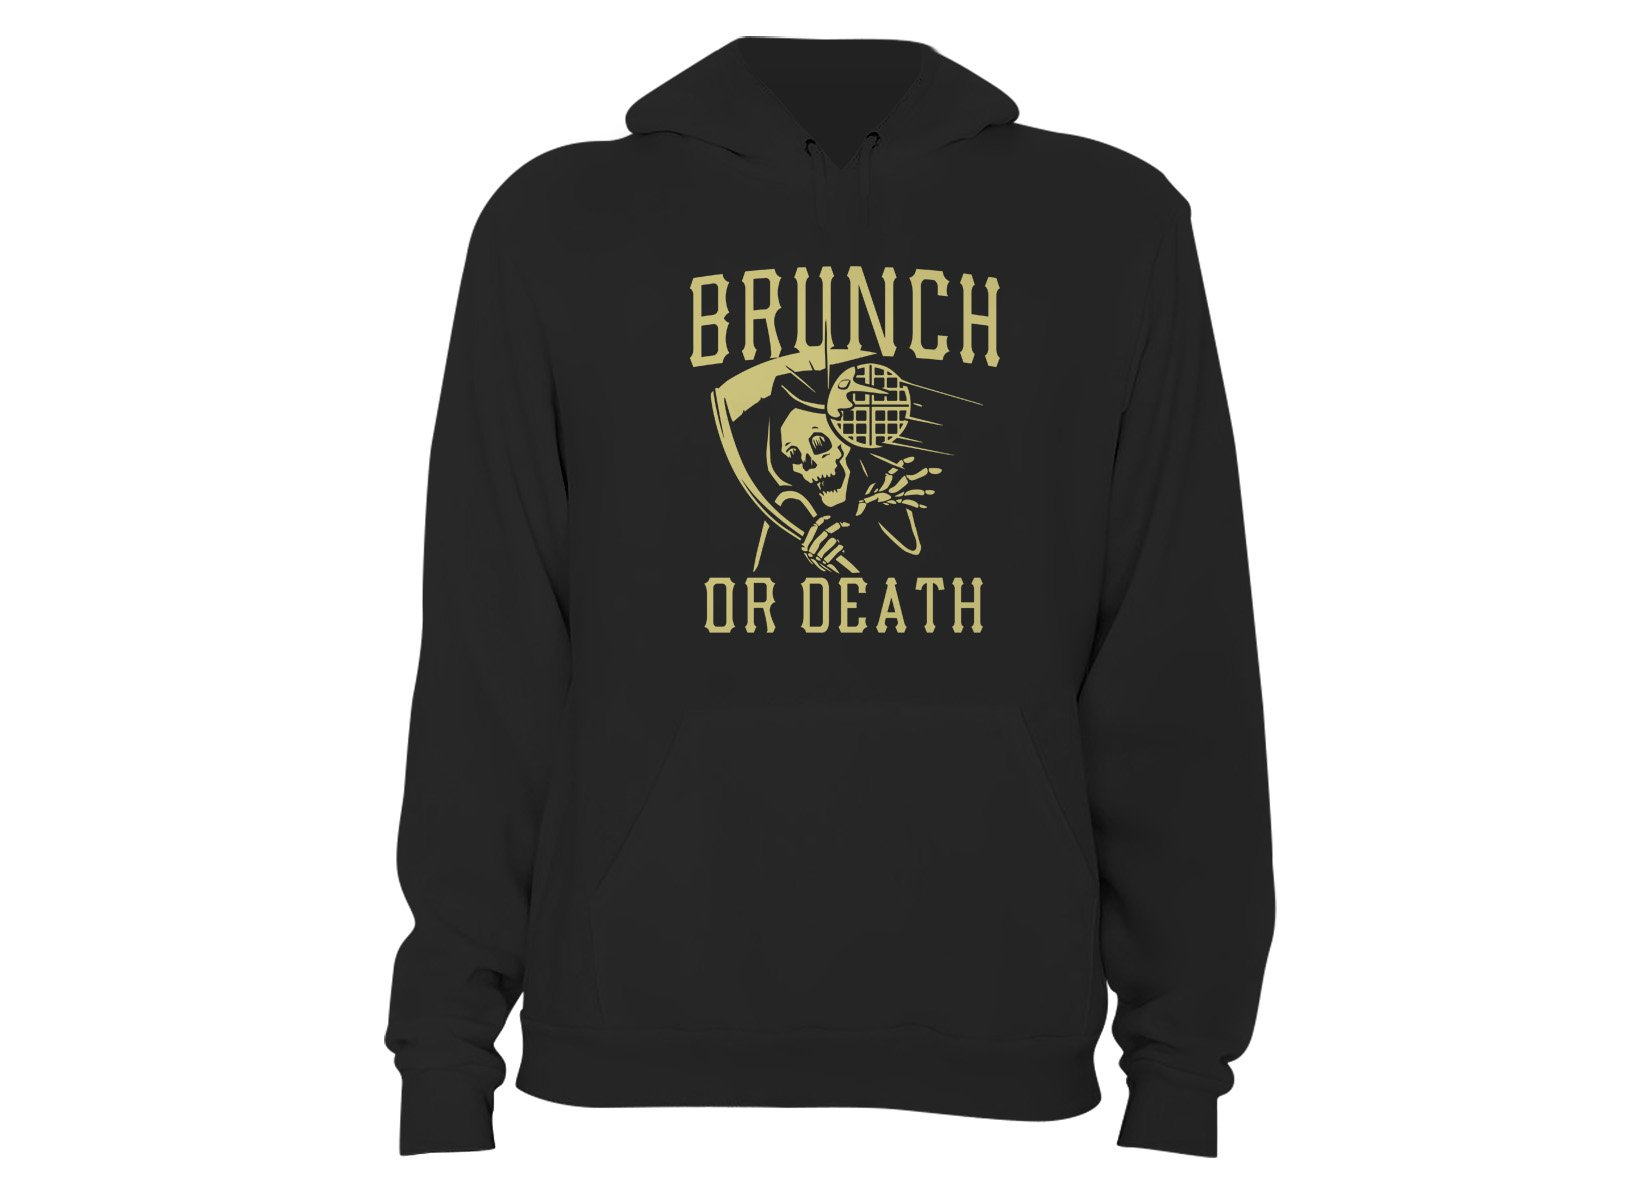 Brunch Or Death on Hoodie